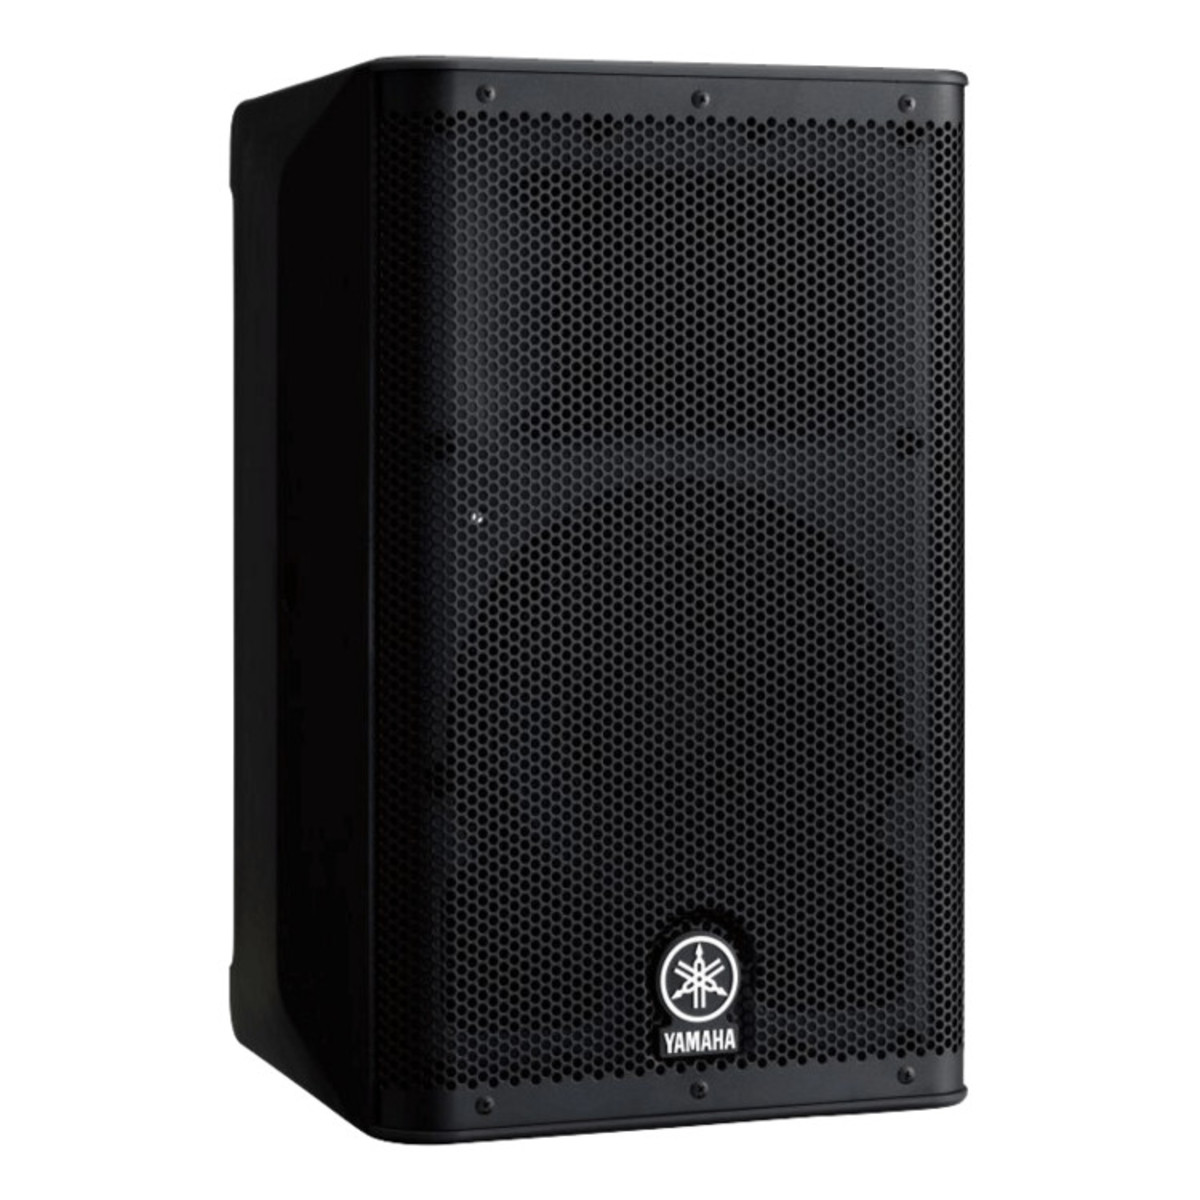 Yamaha Pa Speakers : yamaha dxr10 active pa speaker at gear4music ~ Vivirlamusica.com Haus und Dekorationen